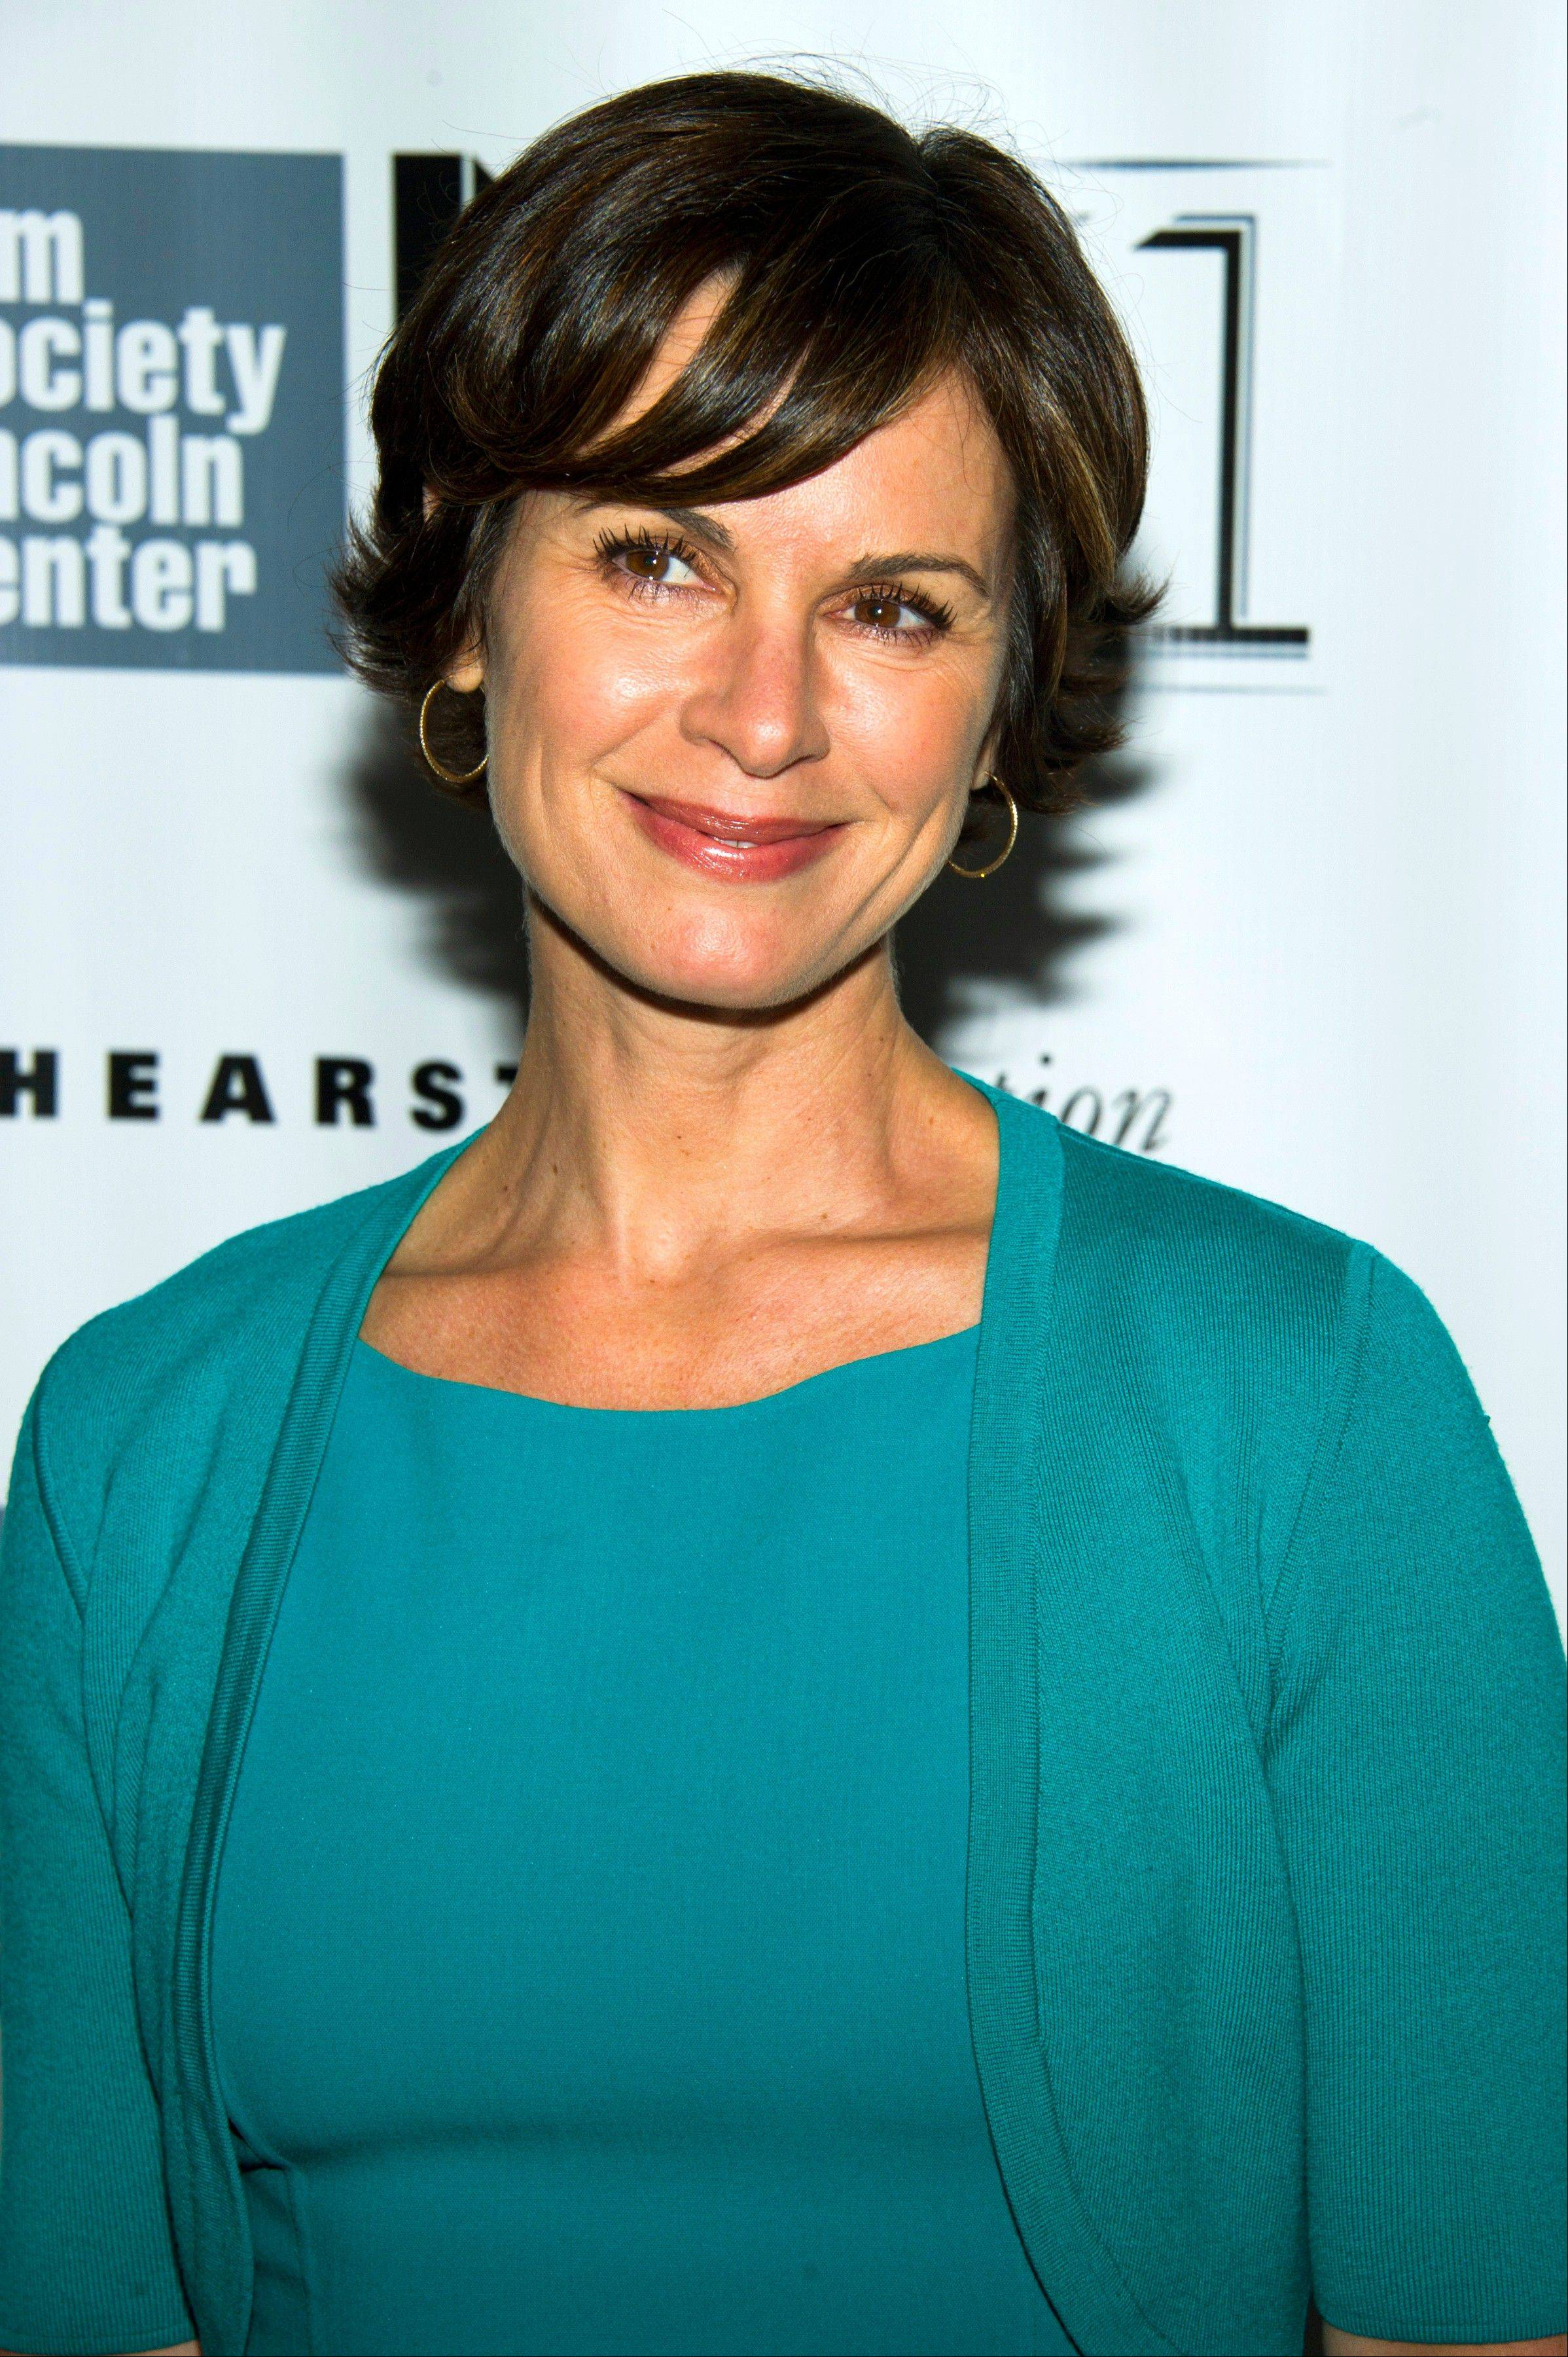 Elizabeth Vargas on Wednesday confirmed a New York Daily News story about her treatment for alcohol dependency. Vargas, who is 51 and married to singer-songwriter Marc Cohn, is anchor of the ABC newsmagazine �20/20� and last appeared on the network in October.